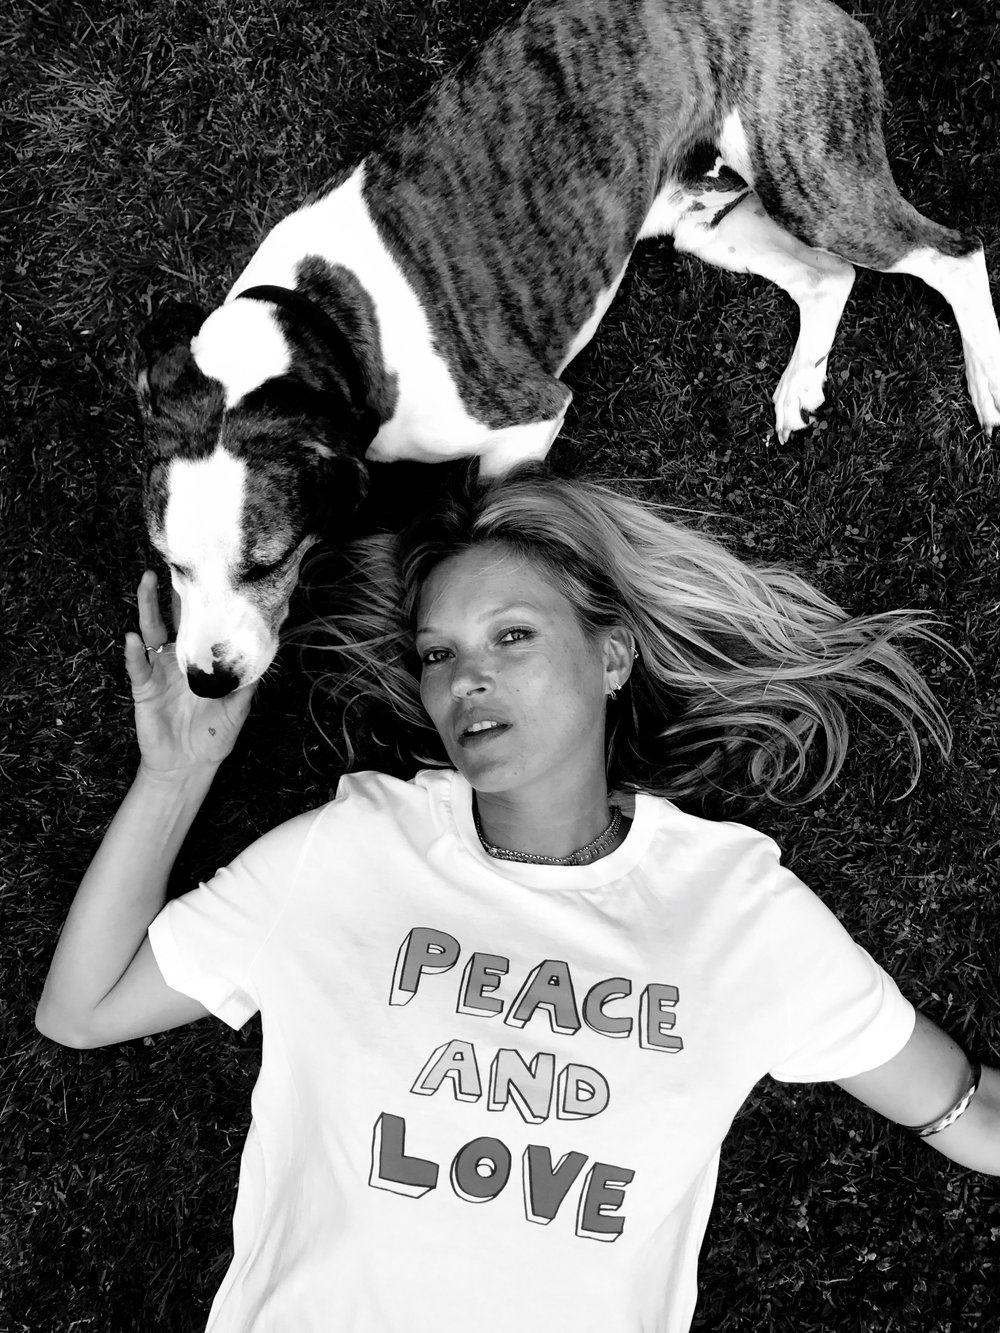 Kate Moss wears Bella Freud's t-shirt #WearItForWarChild